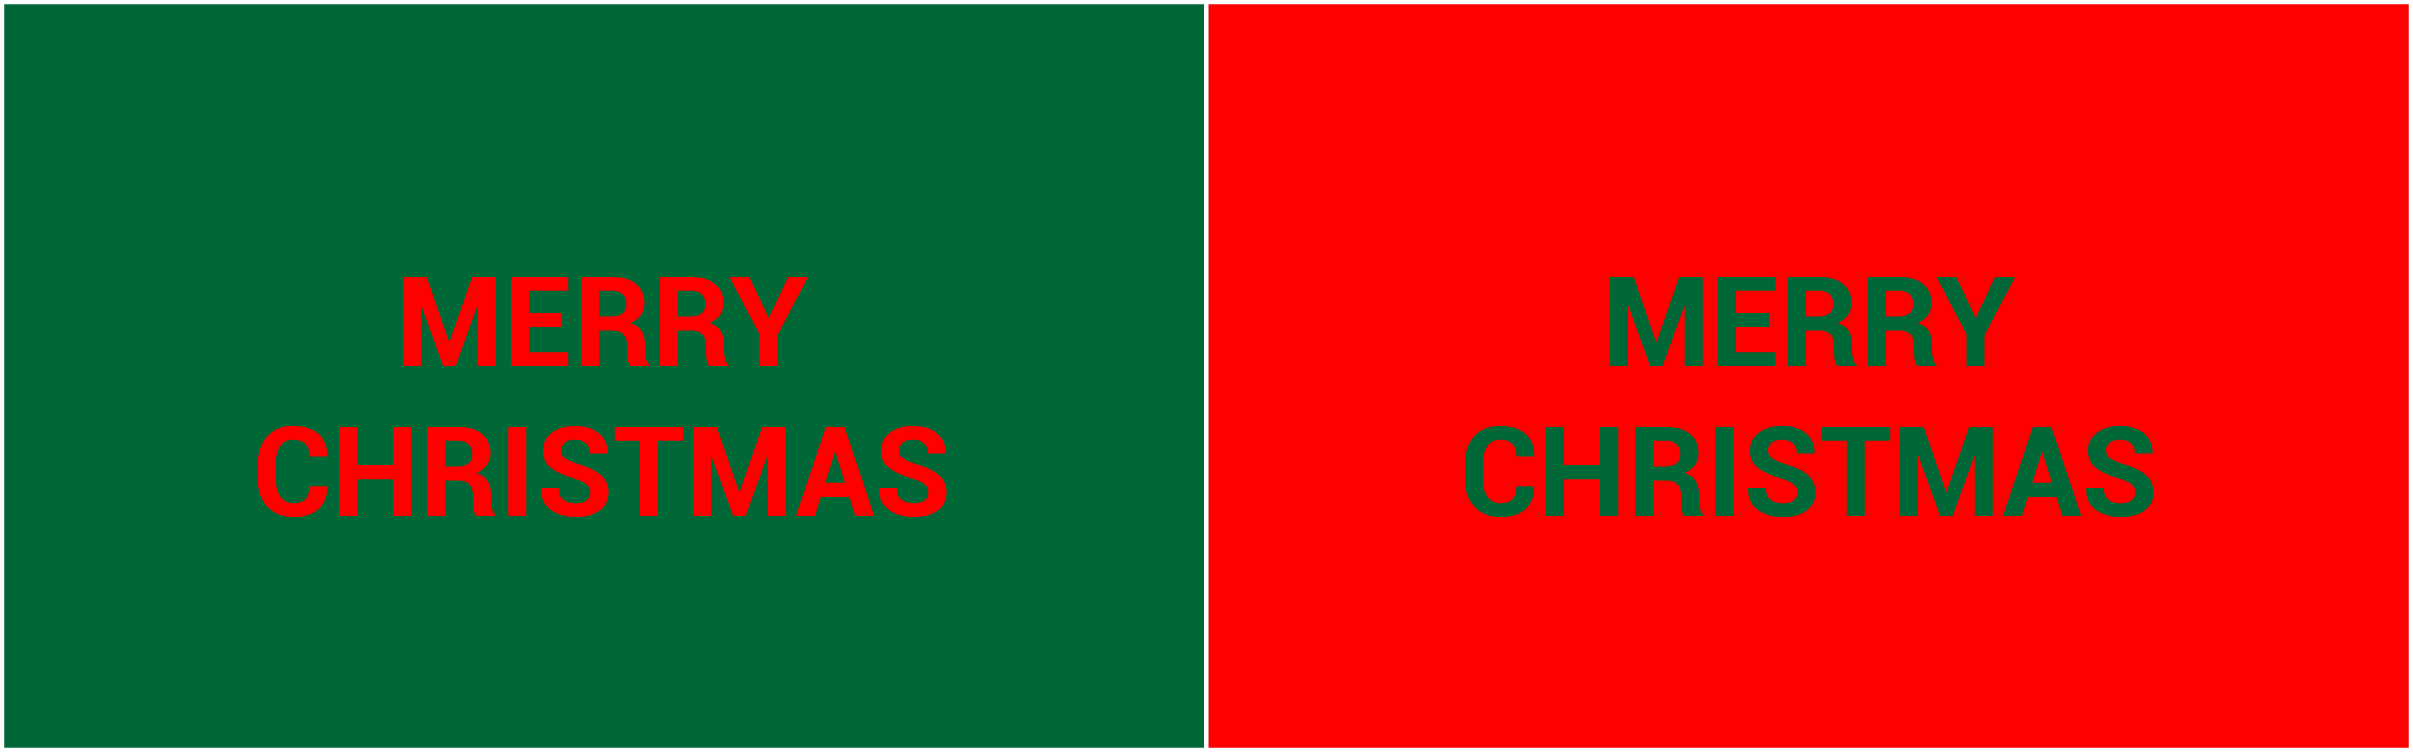 red and green colour with text is bad design